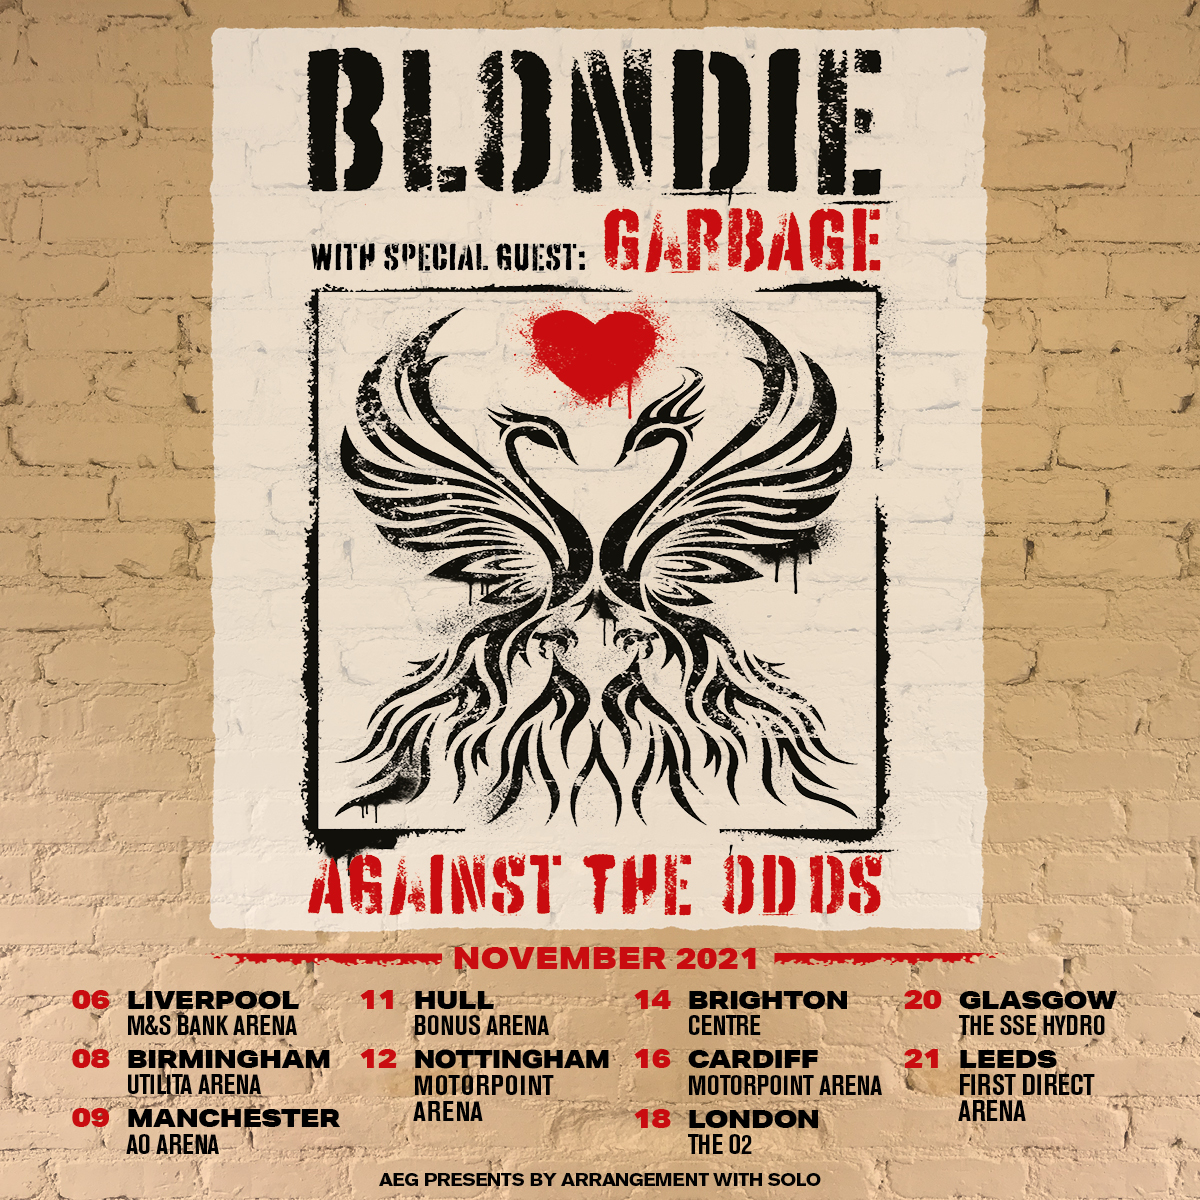 Blondie announce first UK tour for four years – including a date at Manchester's AO Arena, The Manc